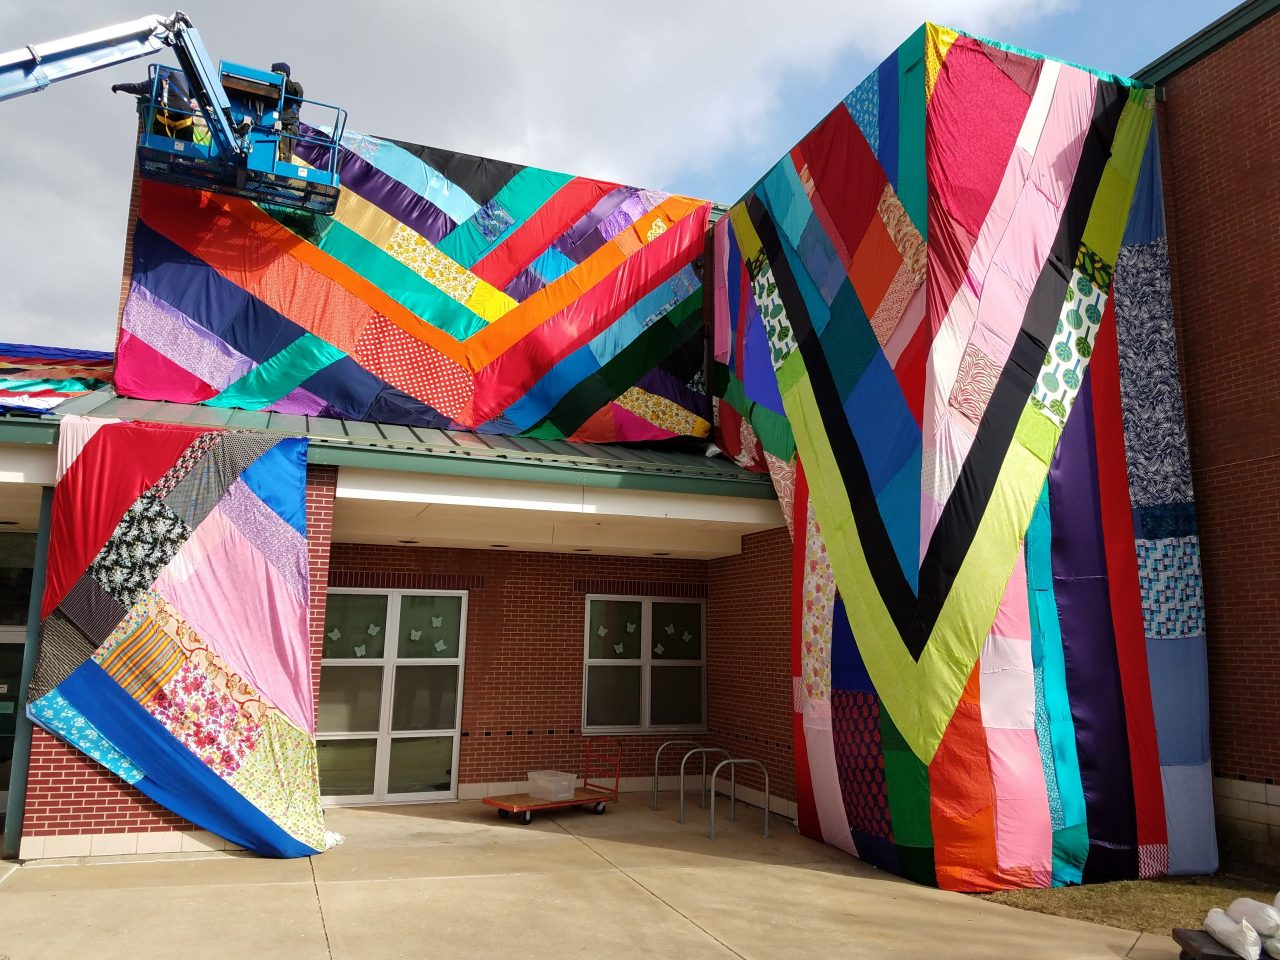 View of colorful fabric installation around the entrance of Stratton Elementary School